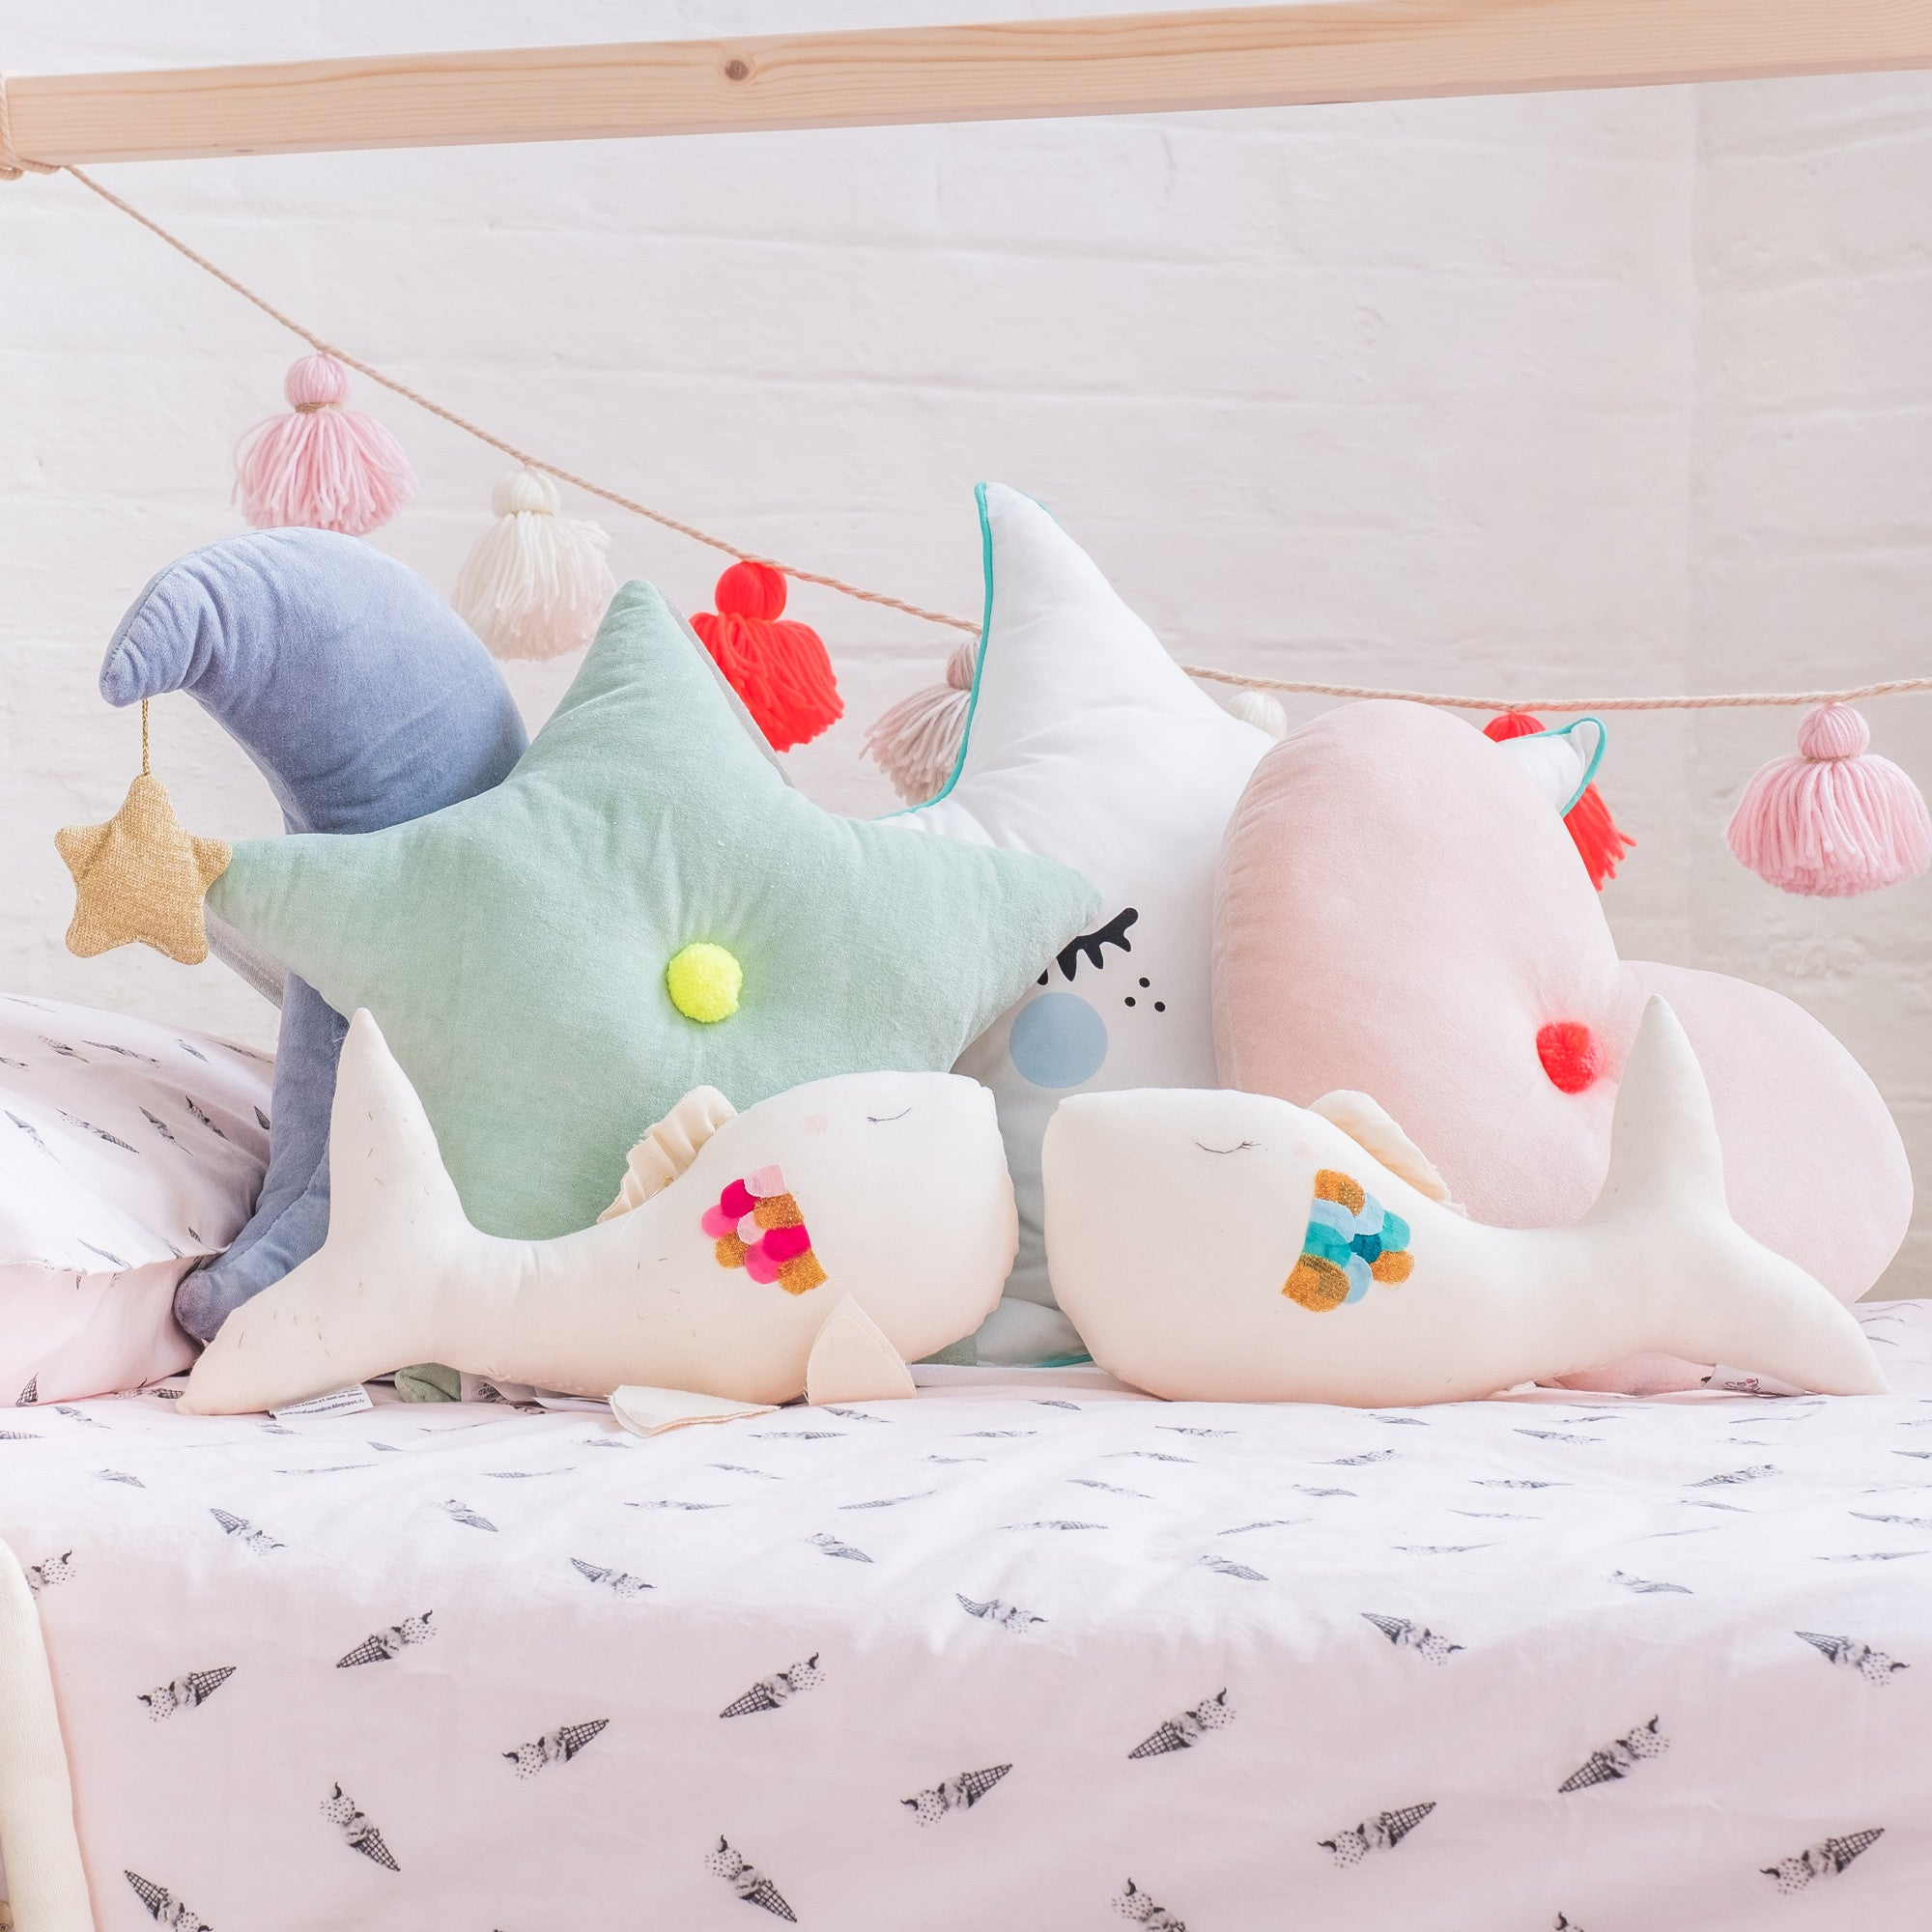 Cushions and accessories including Scalae fish, available at Bobby Rabbit.